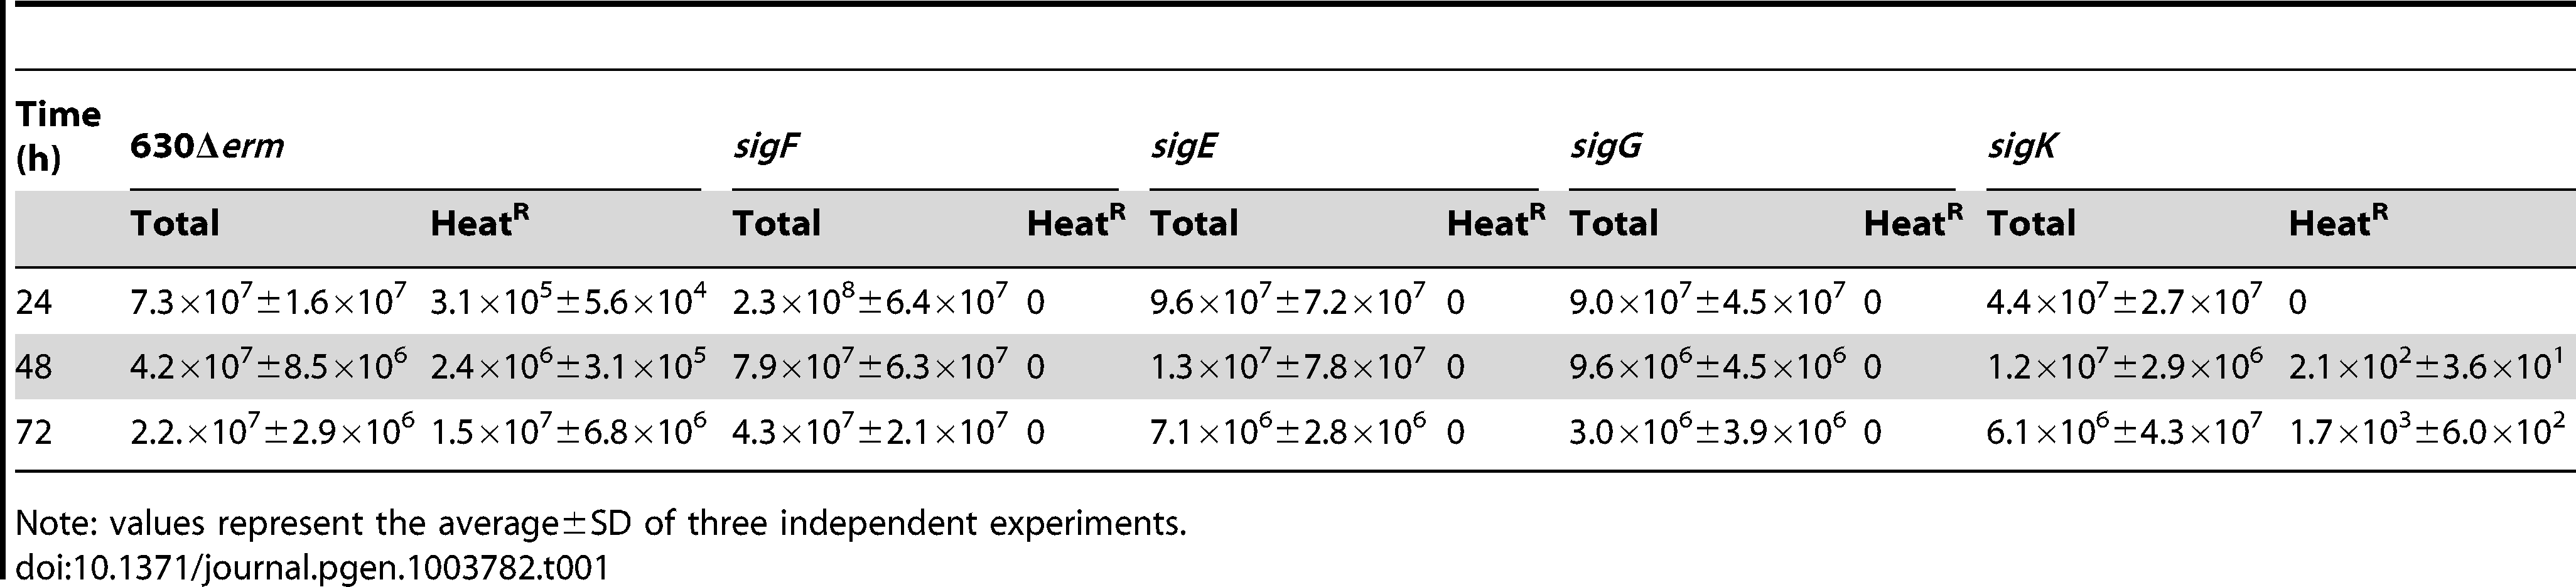 Total and heat resistant (Heat<sup>R</sup>) cell counts (CFU/ml) for the wild type strain (630Δ<i>erm</i>) and congenic <i>sigF</i>, <i>sigE</i>, <i>sigG</i> and <i>sigK</i> mutants in SM.